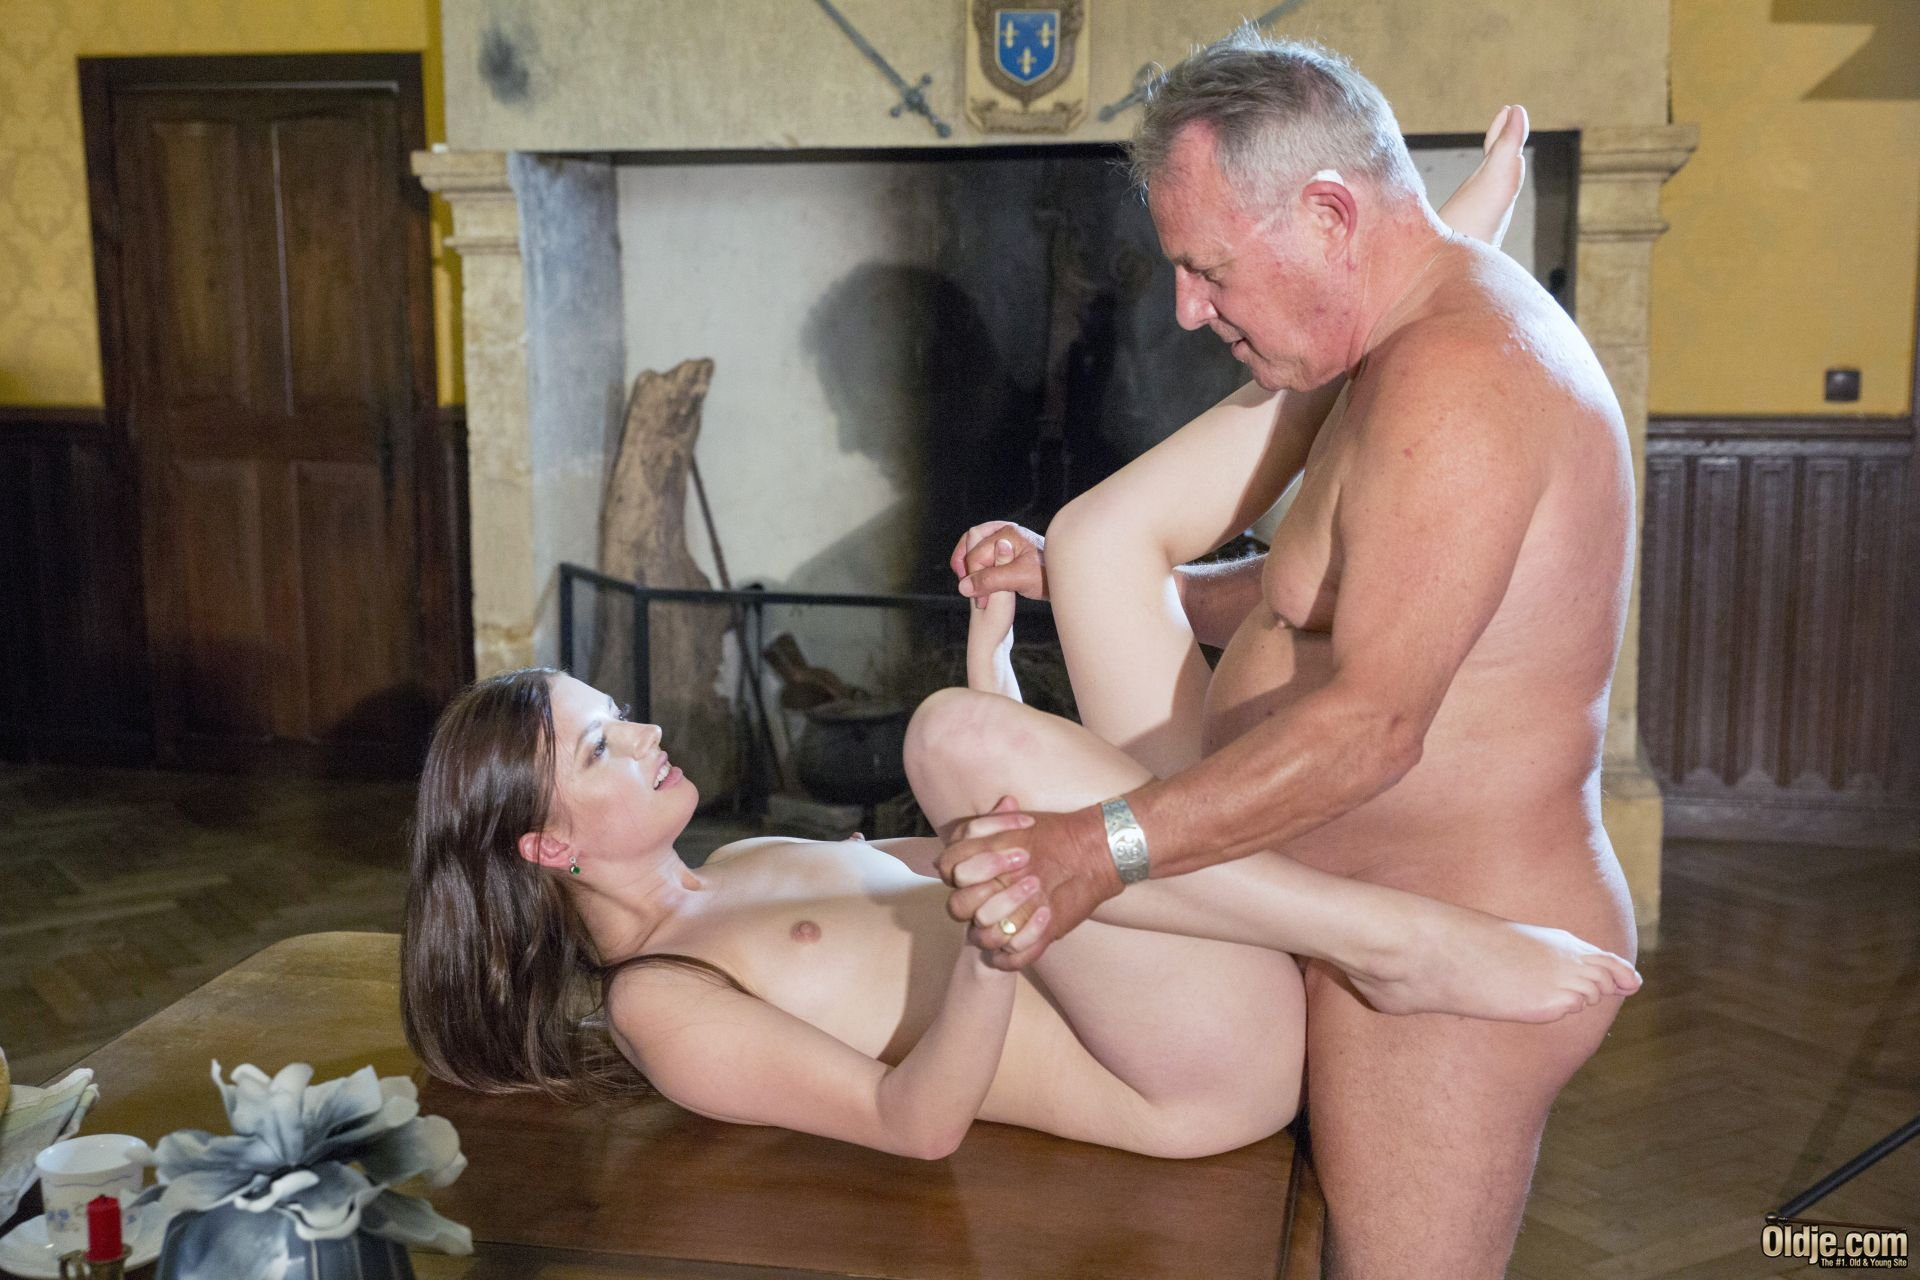 Old man young lady india porn photo